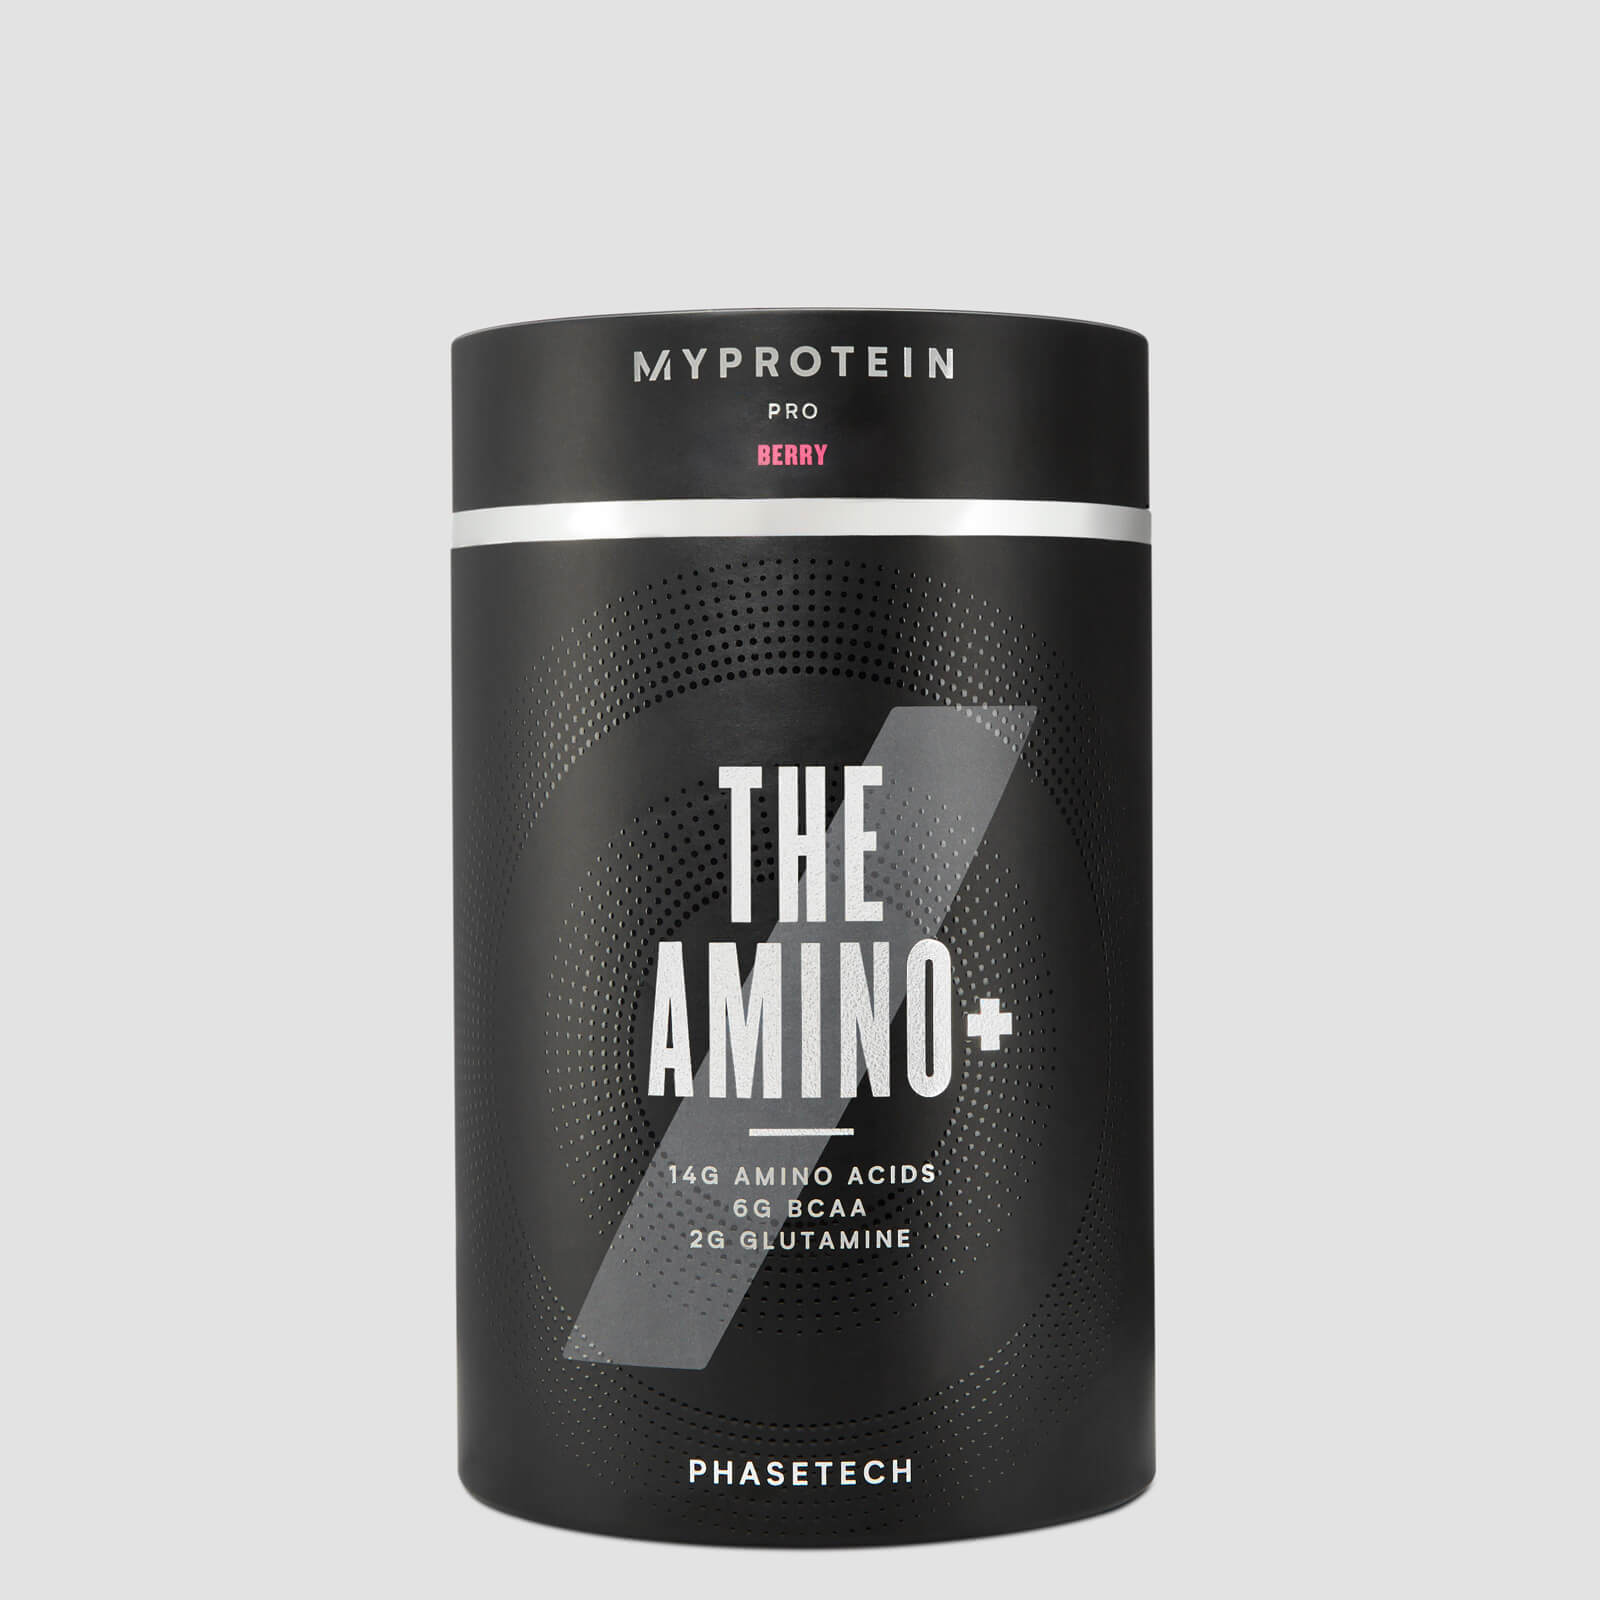 THE Amino+ - 20servings - Explosion de Baies